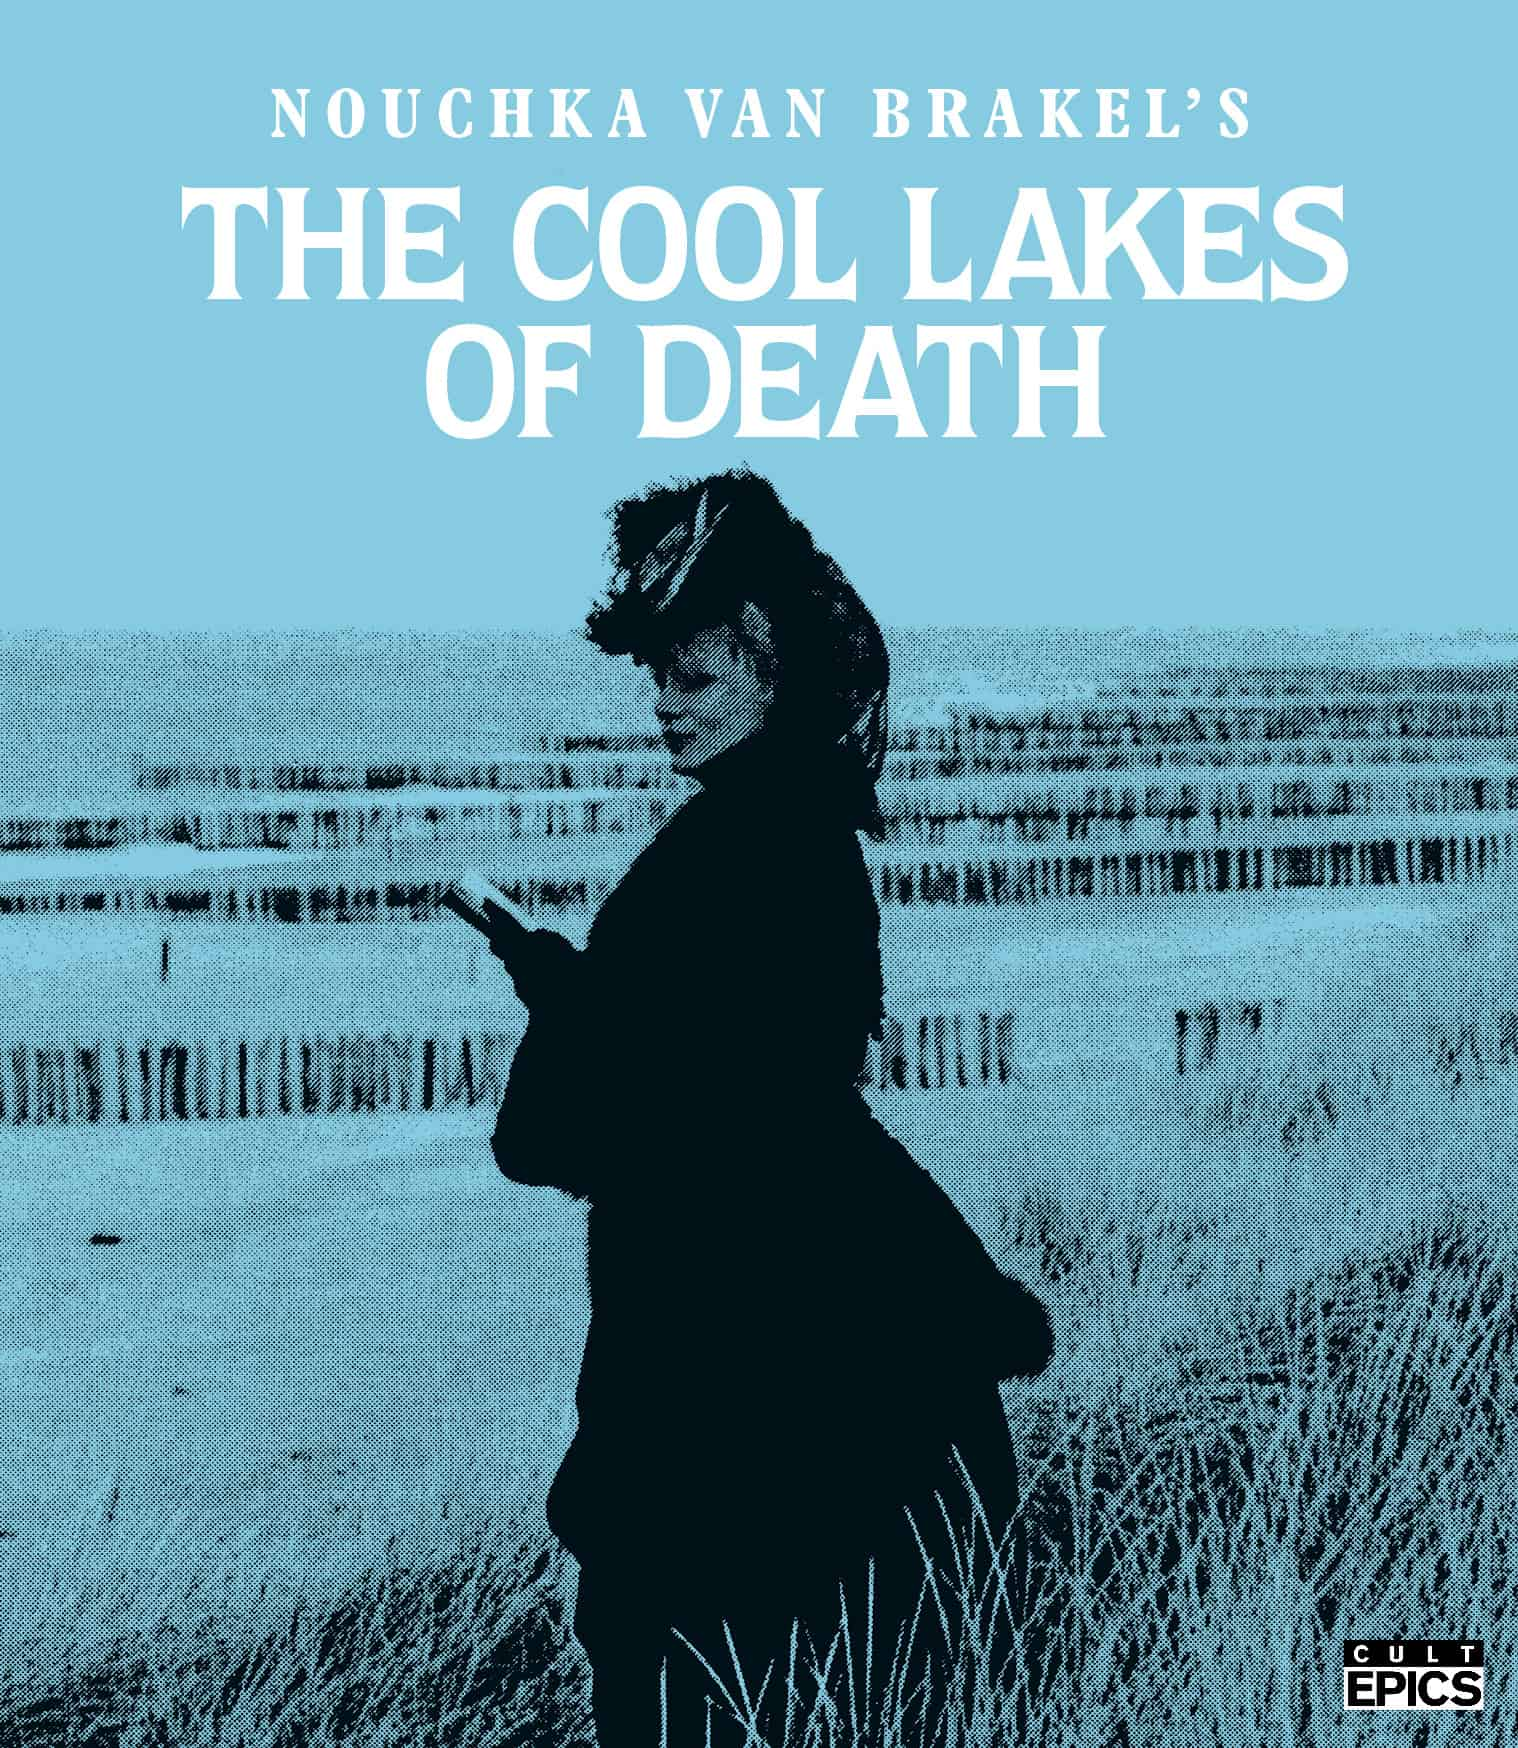 The Cool Lakes of Death Cult Epics Blu-ray